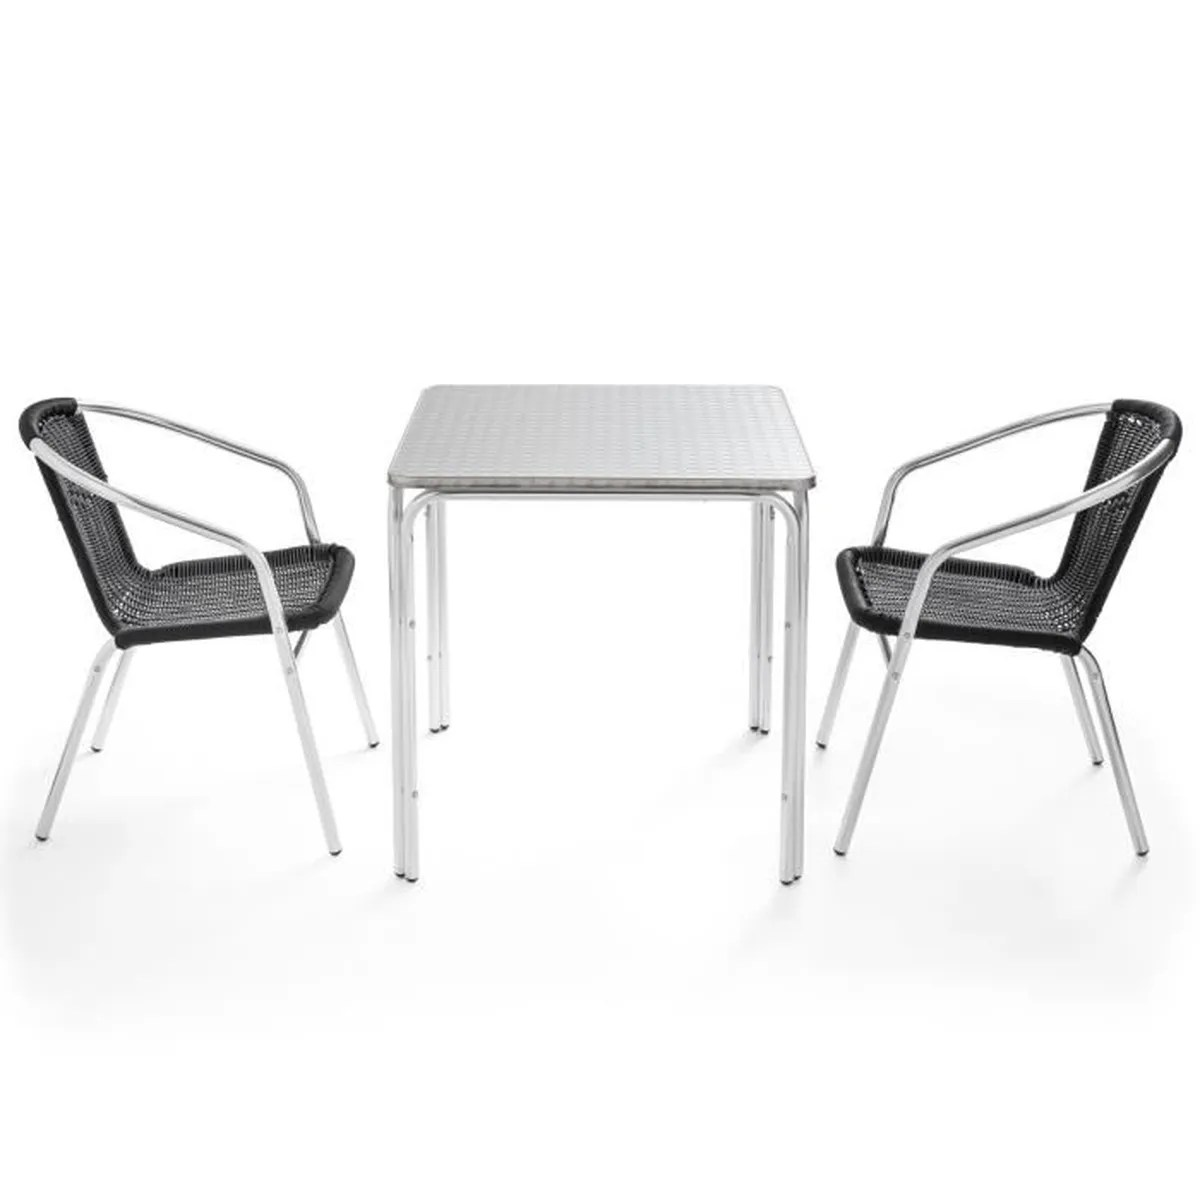 Ensemble Table Et Chaise De Salon Ensemble Table Et 2 Chaises De Jardin Style Bistrot Salon